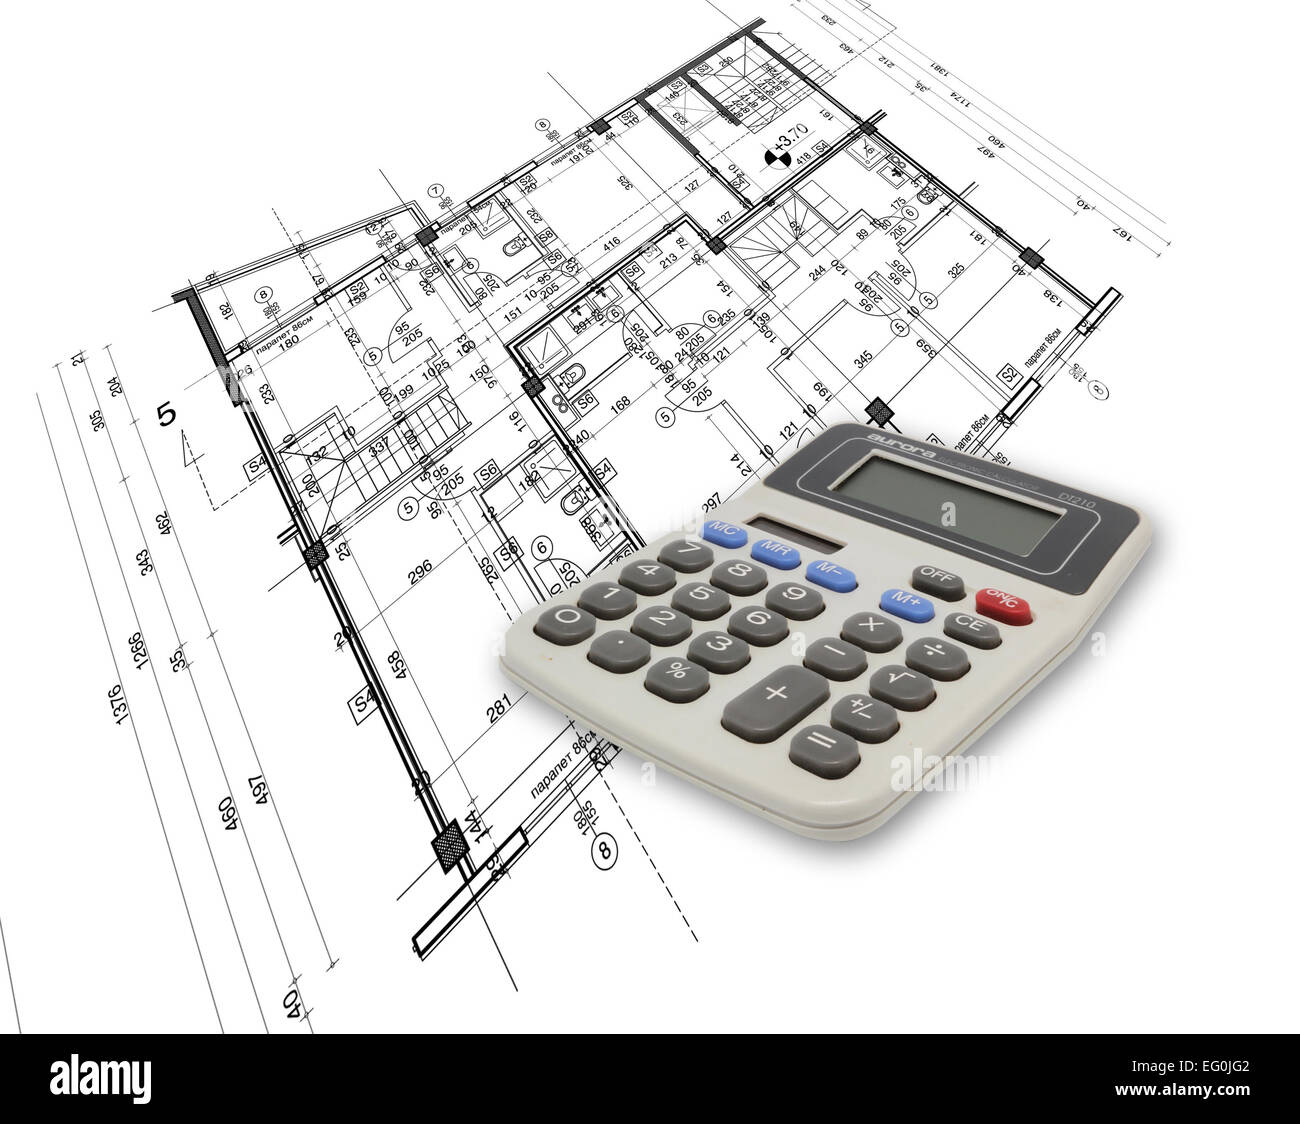 abstract architecture blueprint with calculator made in 2d